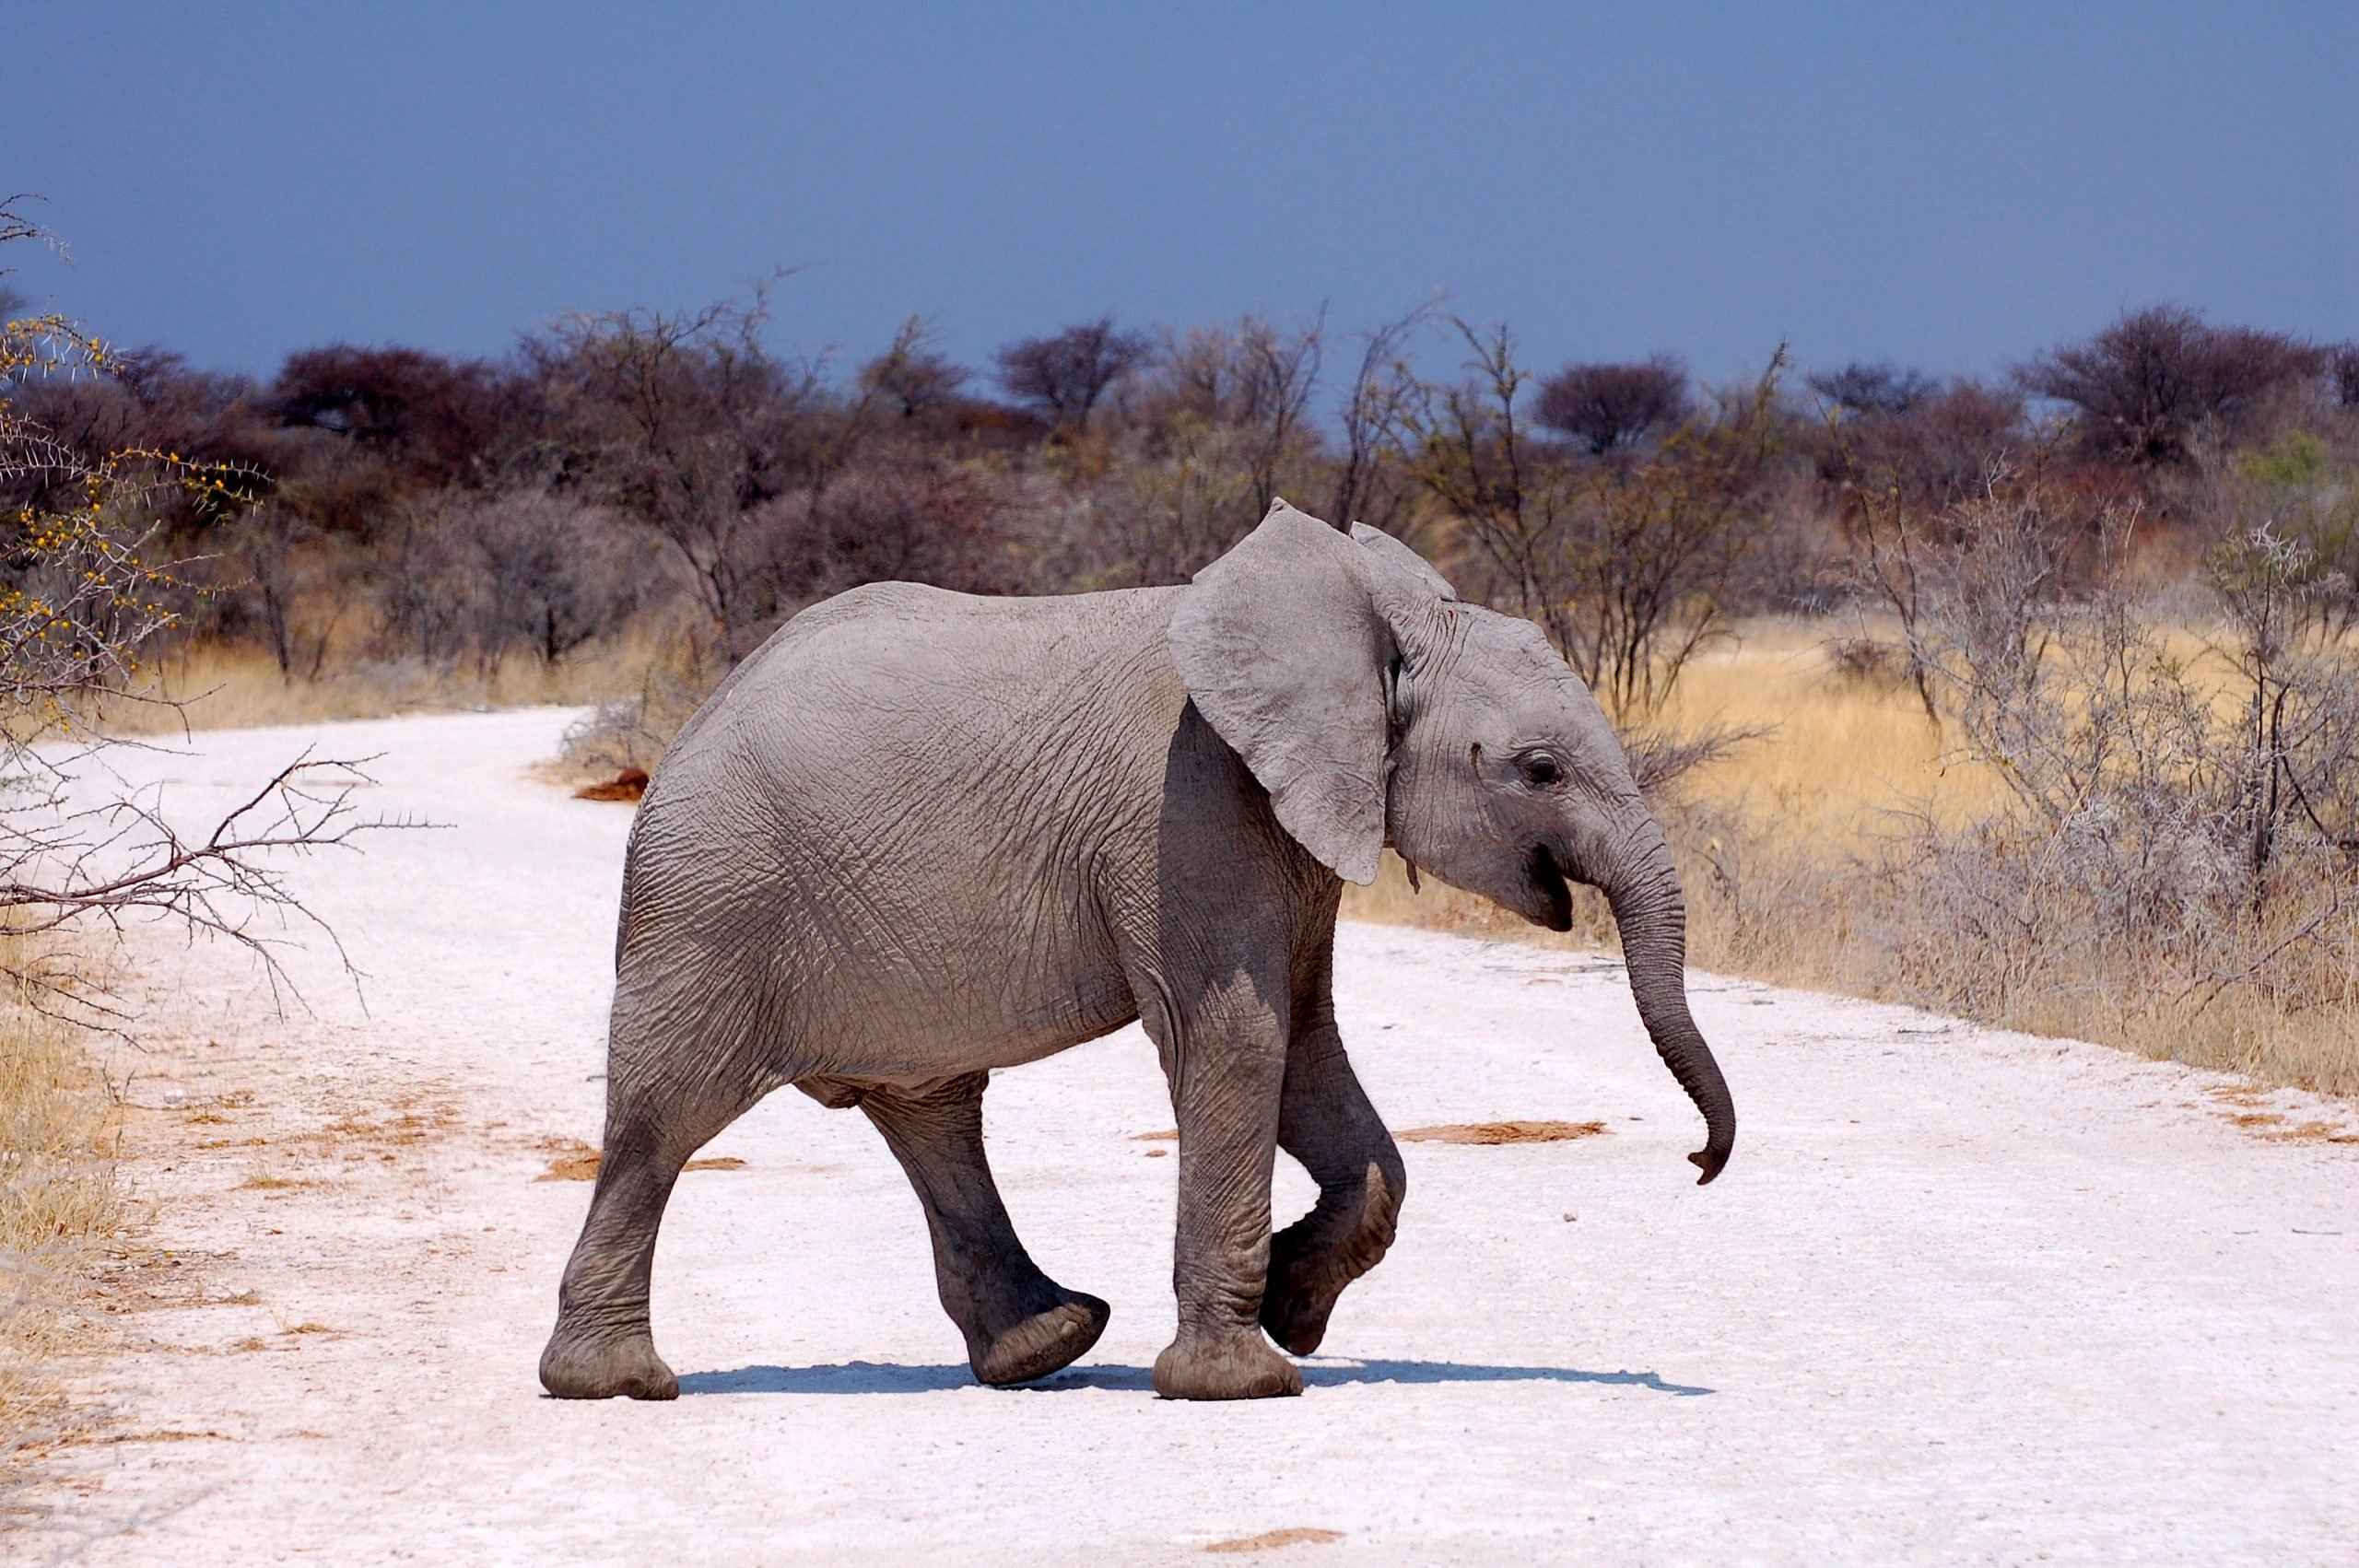 Small Elephant in the Etosha National Park crossing the road